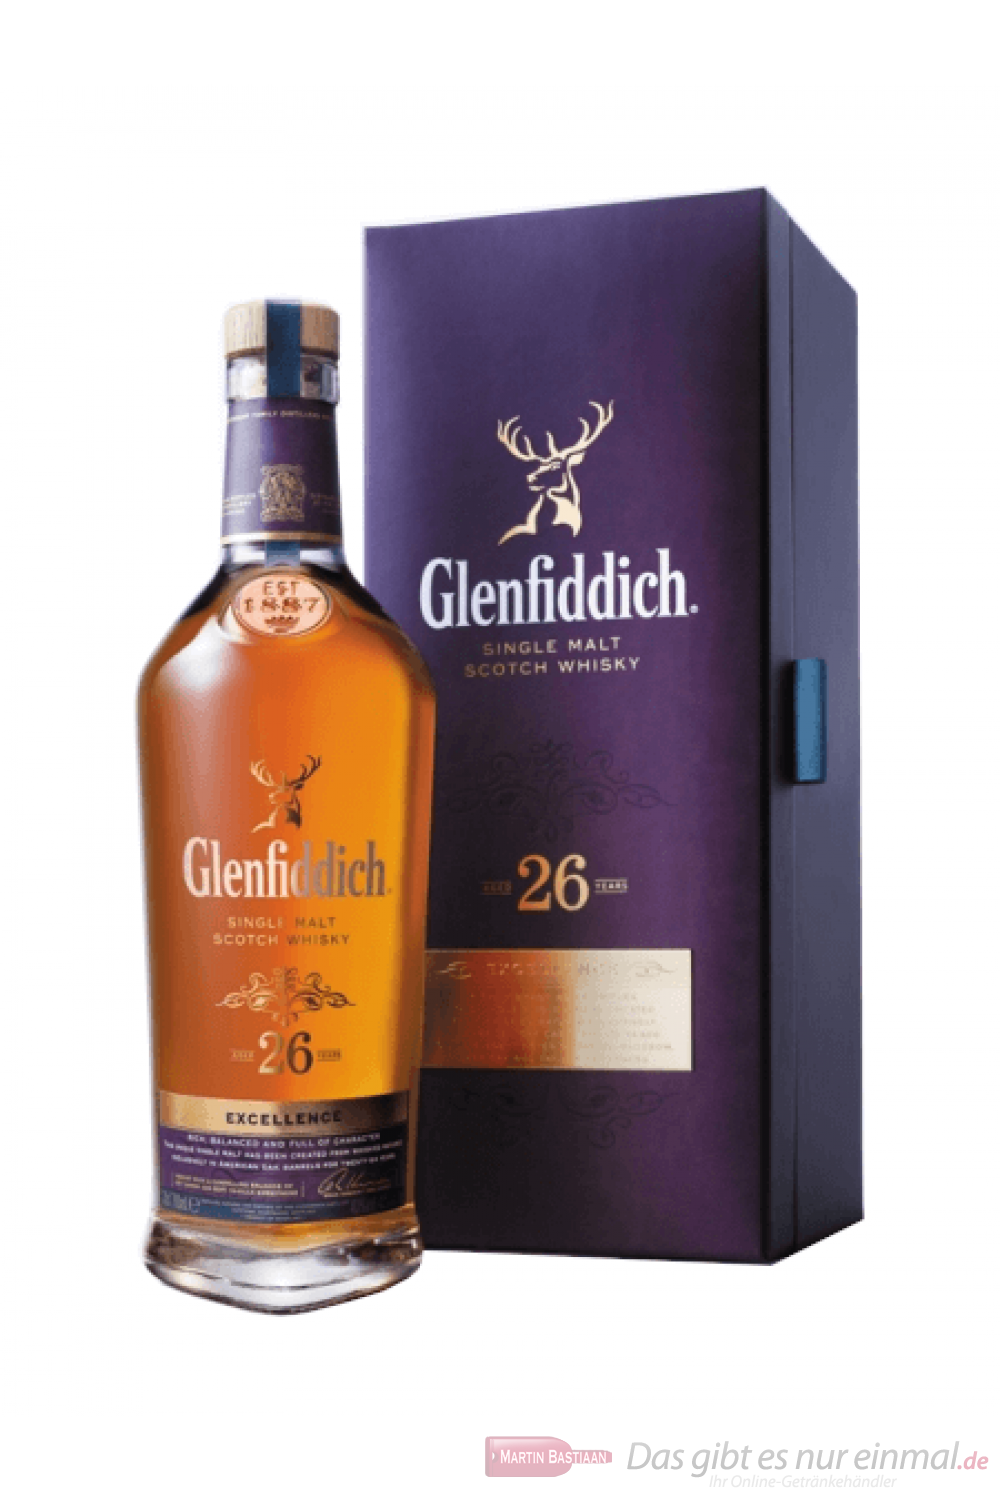 Glenfiddich 26 Years Excellence Single Malt Scotch Whisky 0,7l